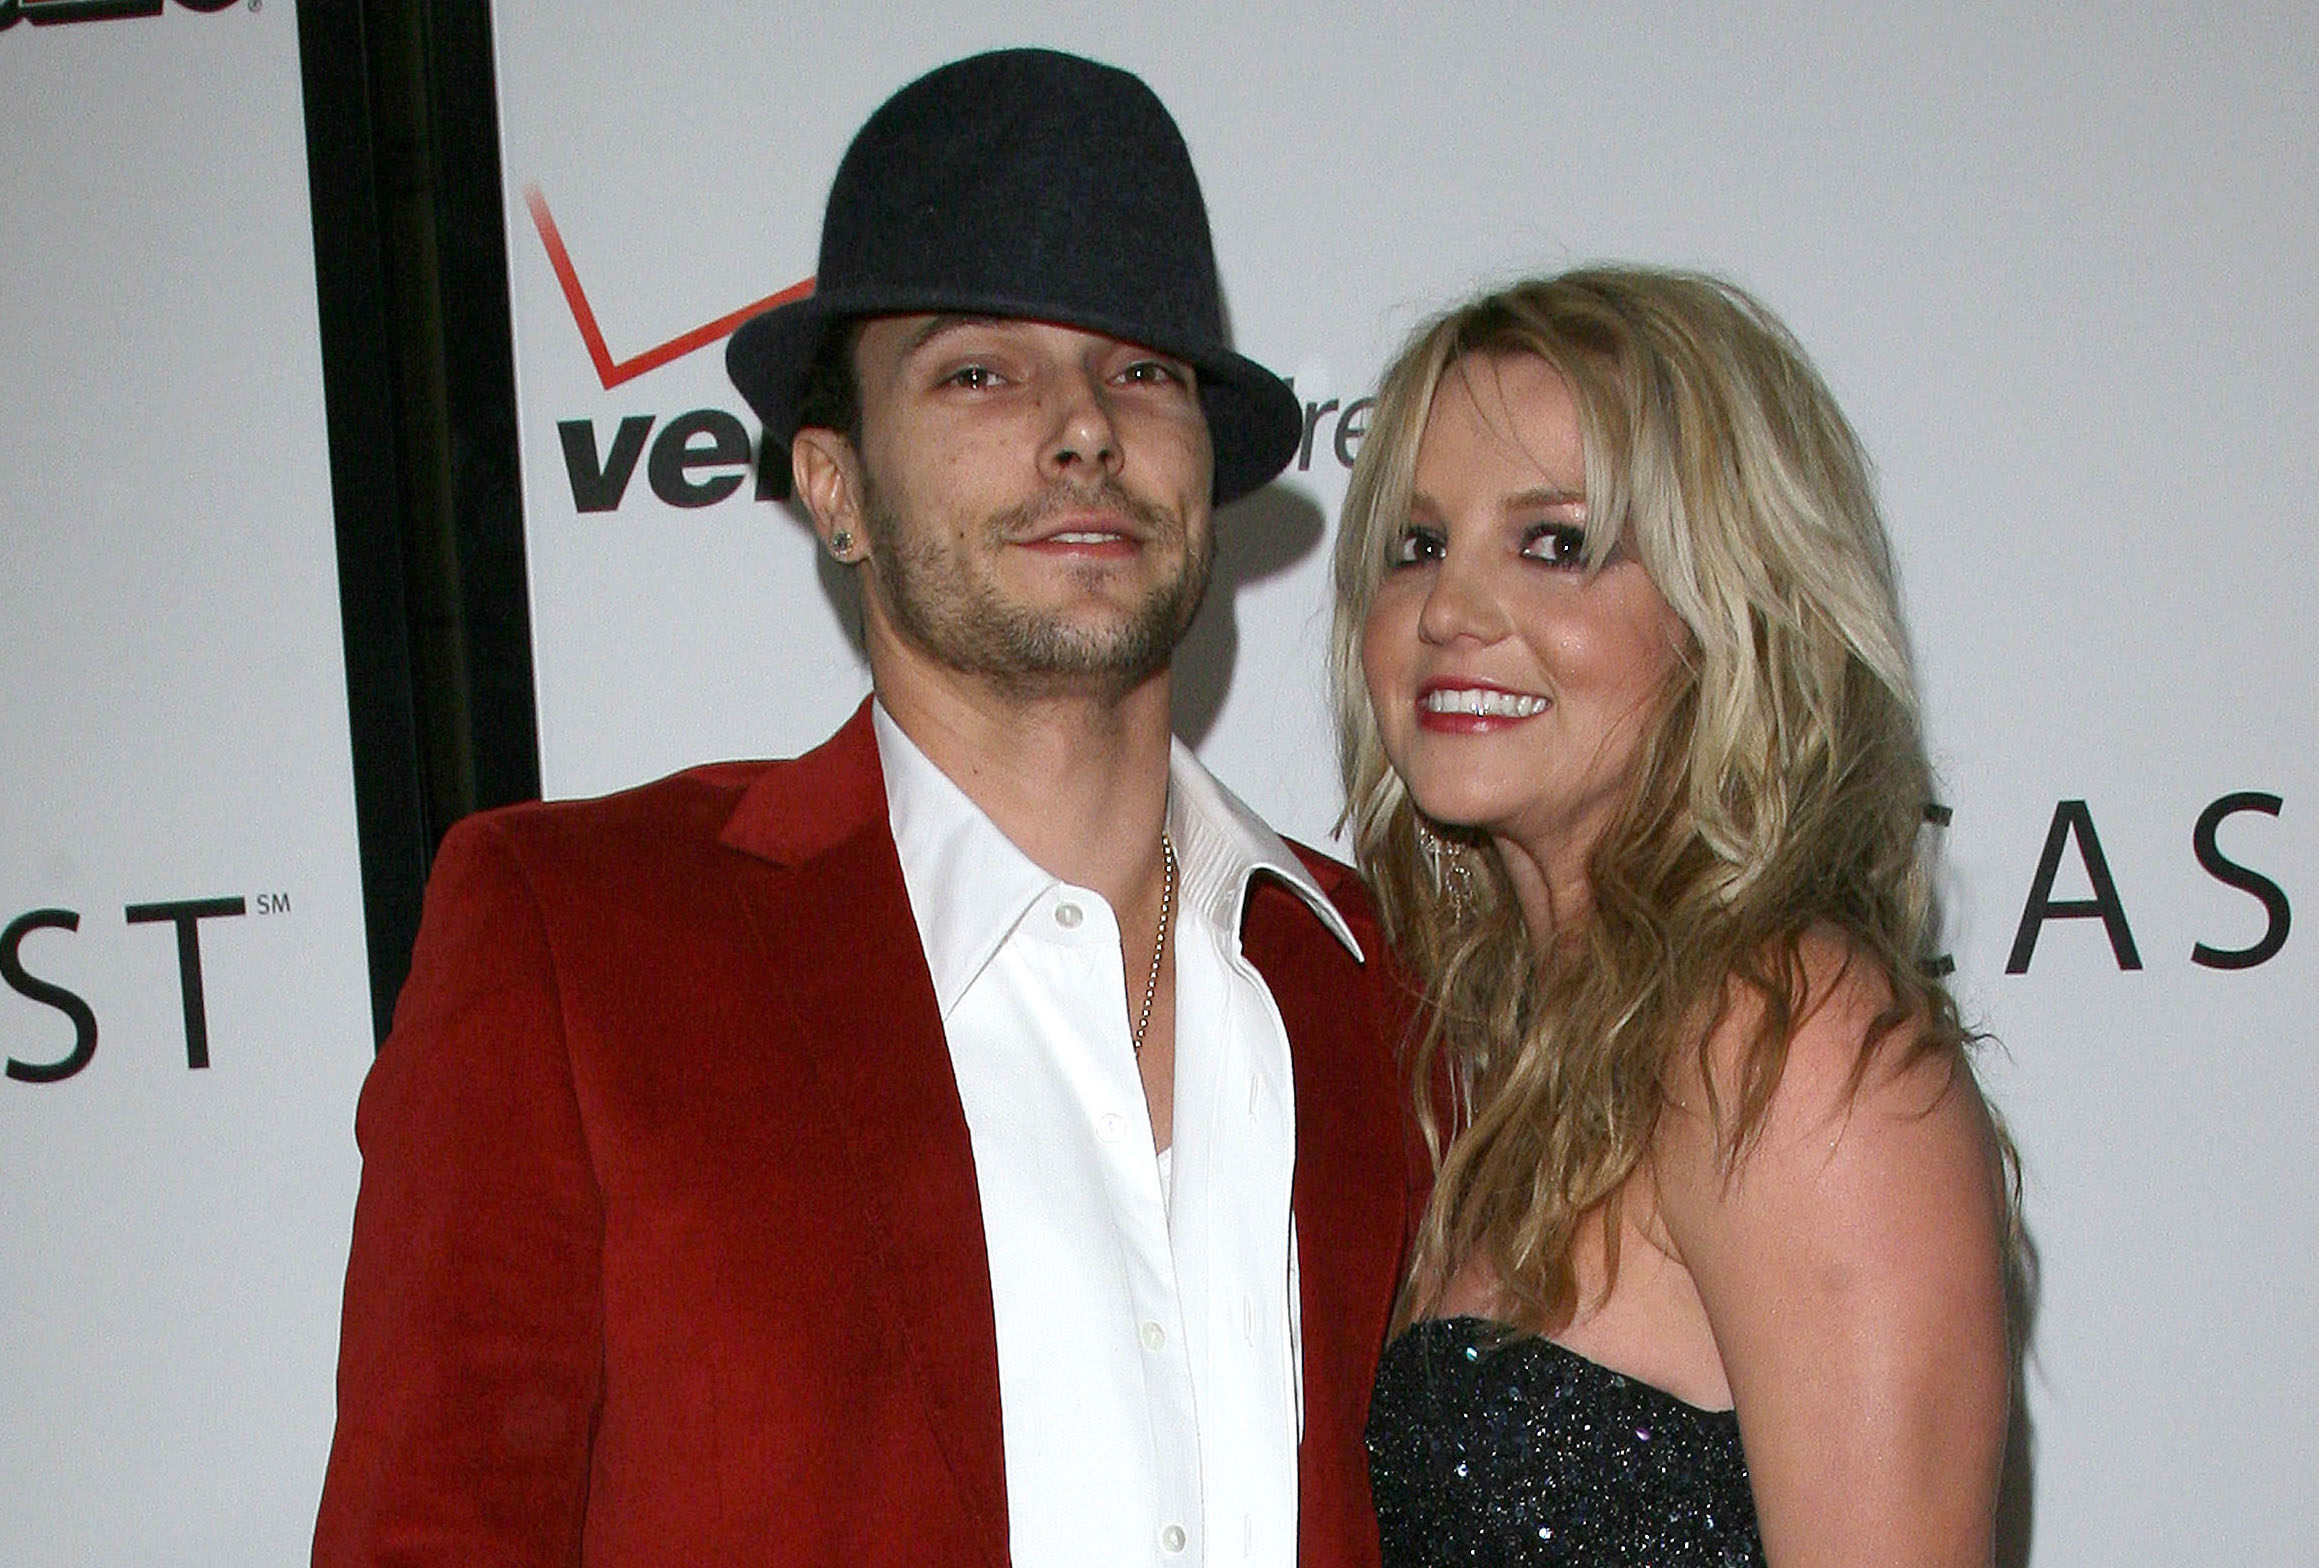 Kevin federline raps in public at teen choice awards nudes (69 pictures)